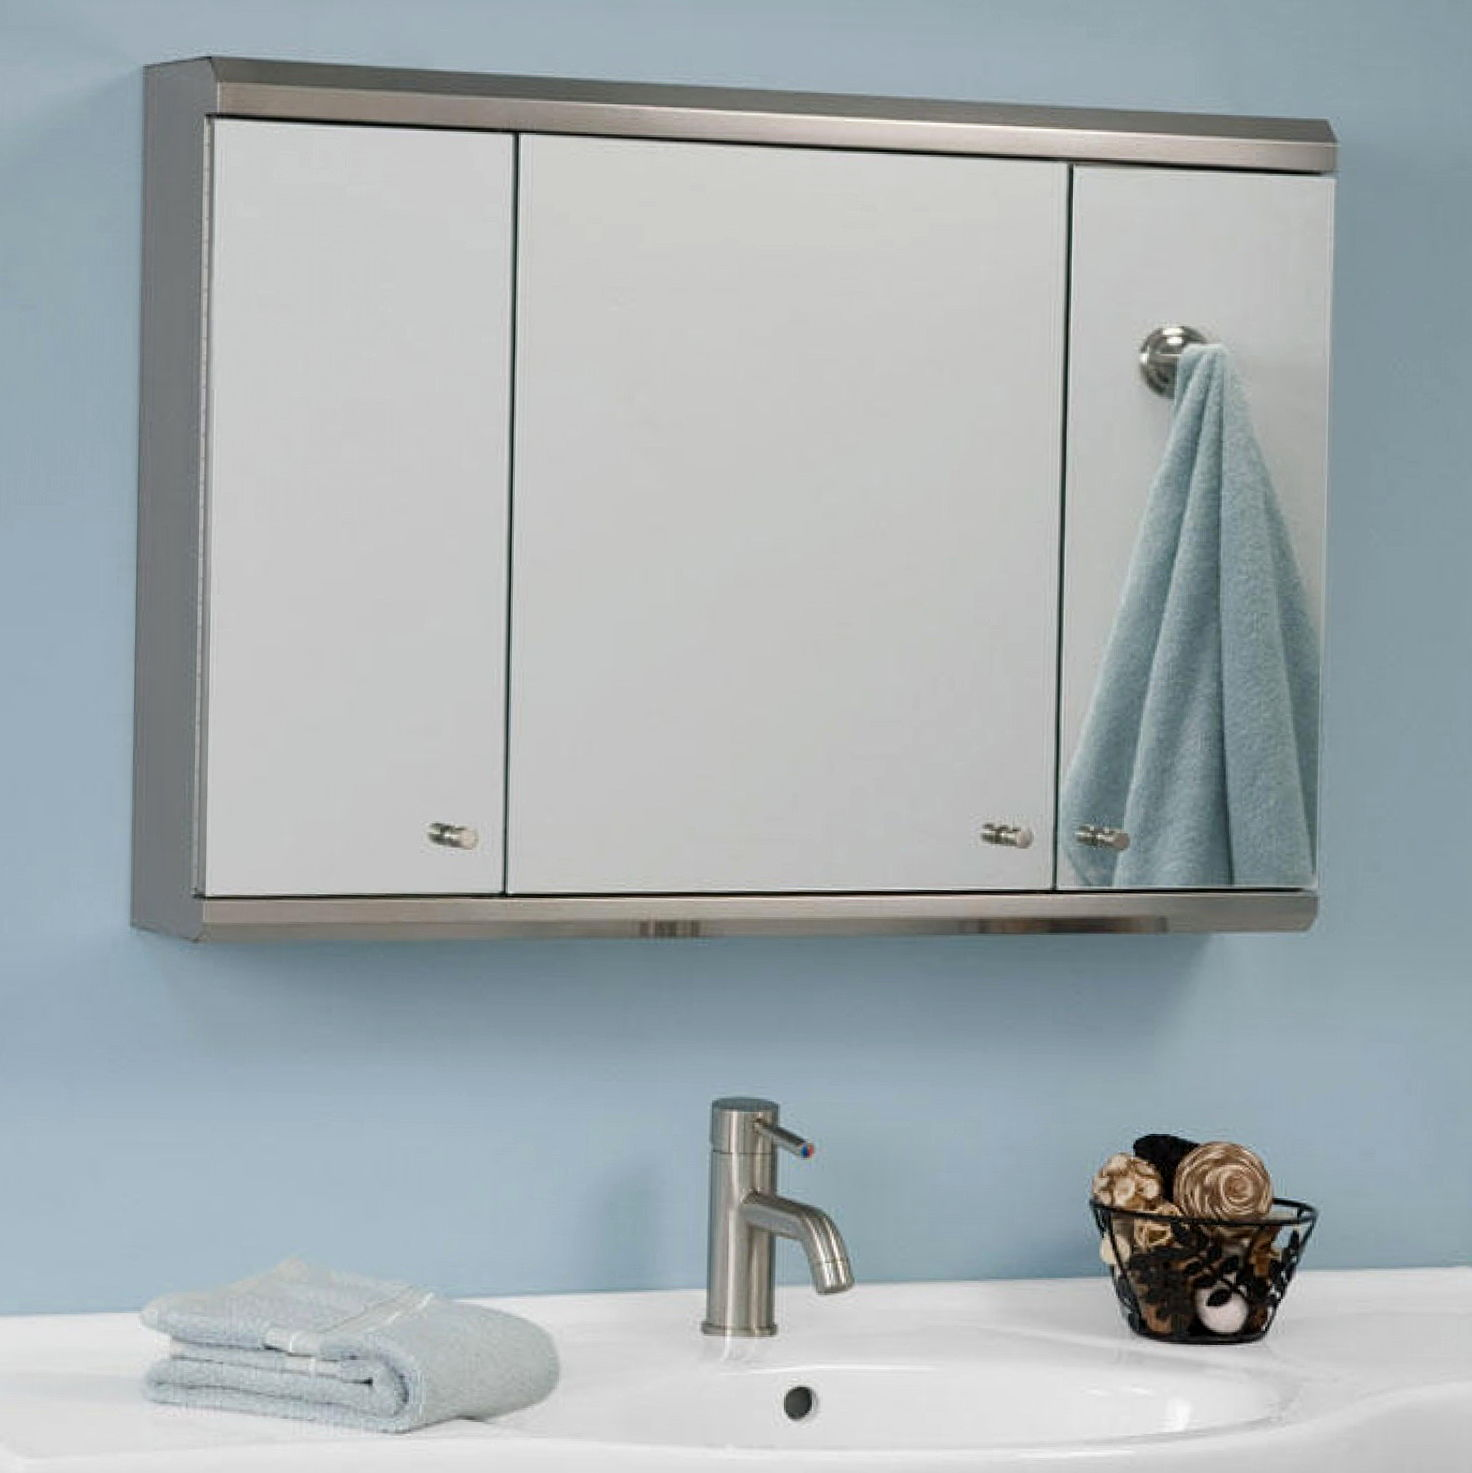 Tri Fold Bathroom Mirror - 4k Wallpapers Design